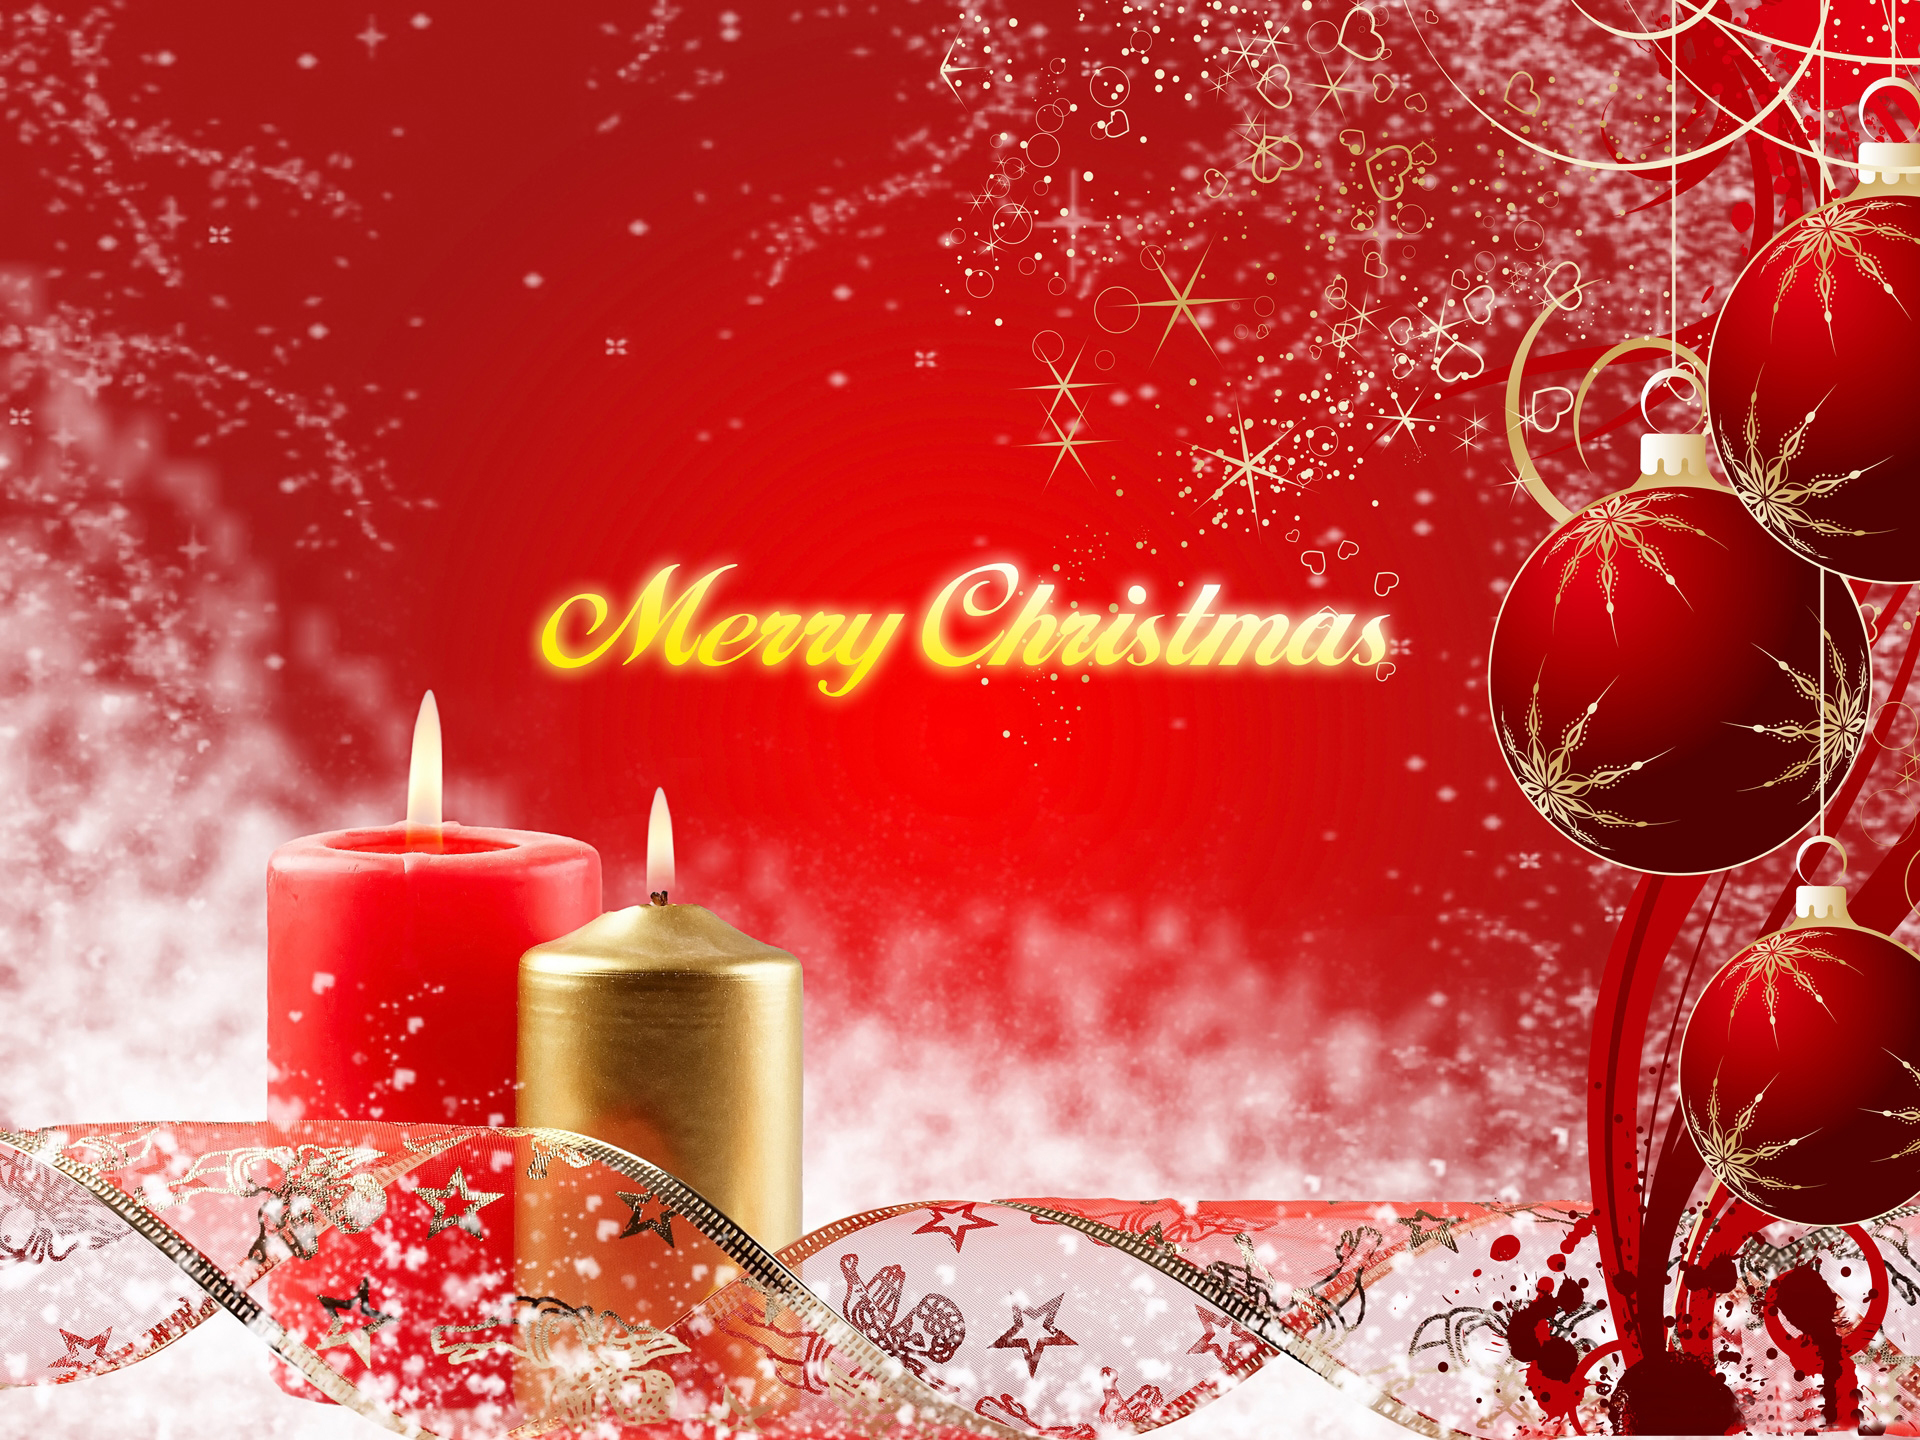 merry-christmas-wishes-free-hd-wallappers-for-tablets - hd wallpaper